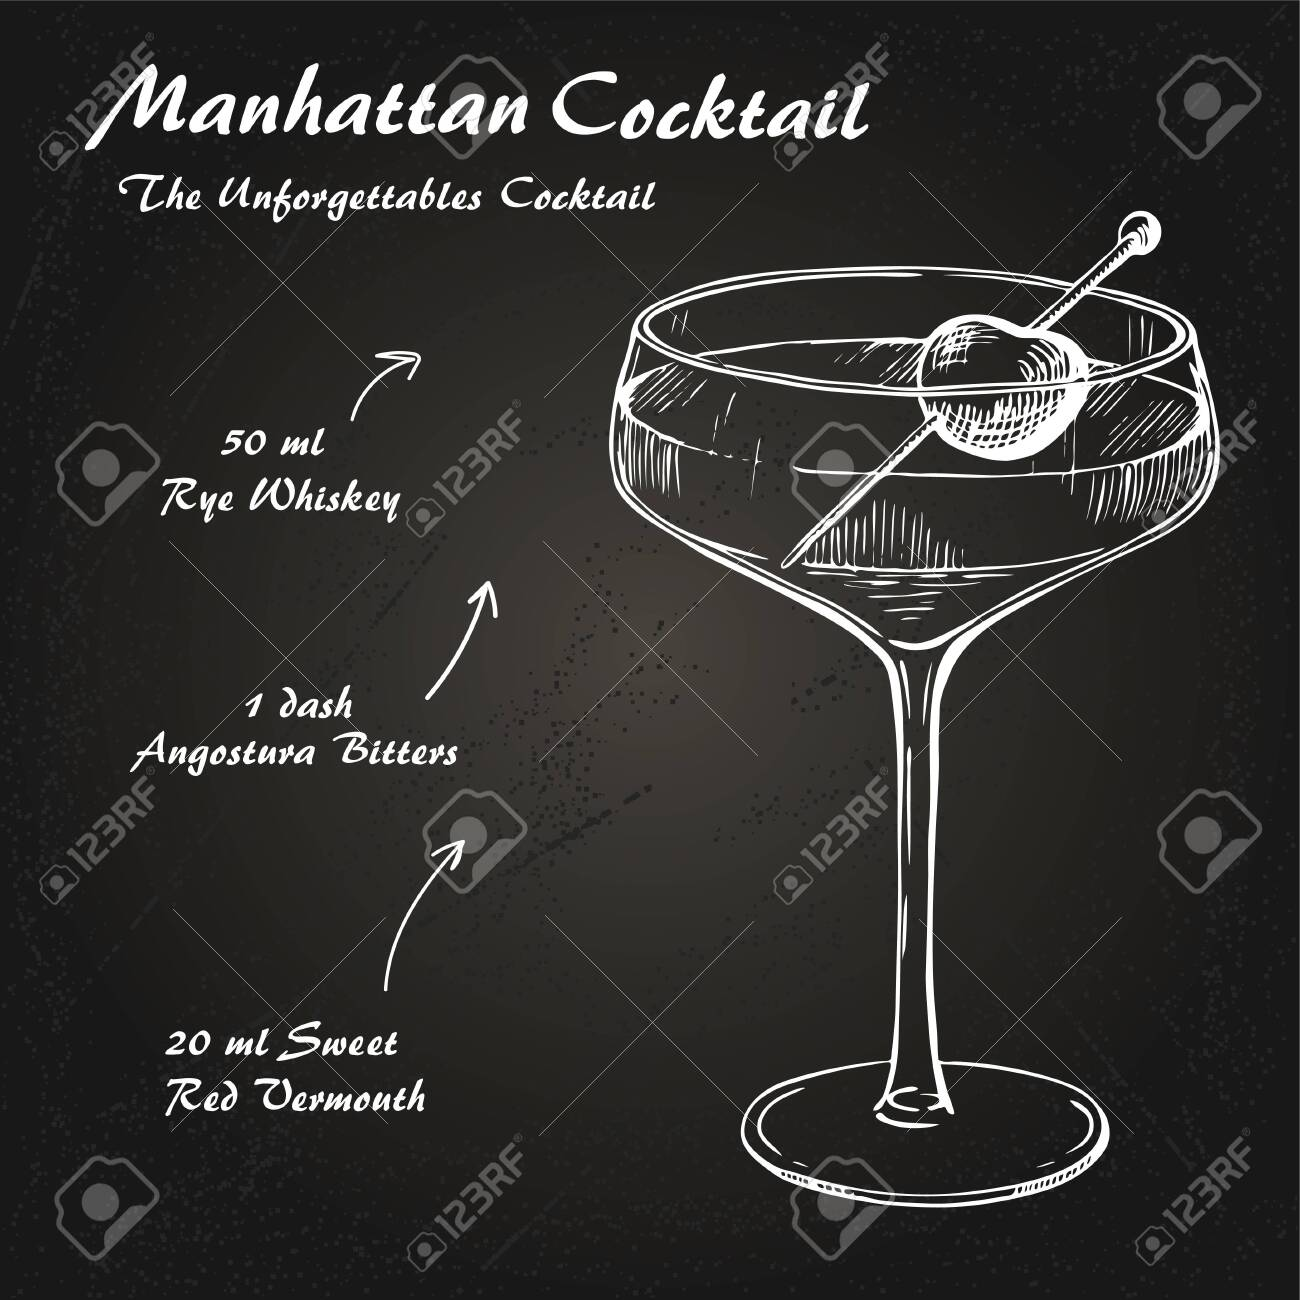 Manhattan Cocktail Recipe Vector Hahddrawn Illustration Sketch Royalty Free Cliparts Vectors And Stock Illustration Image 149829803